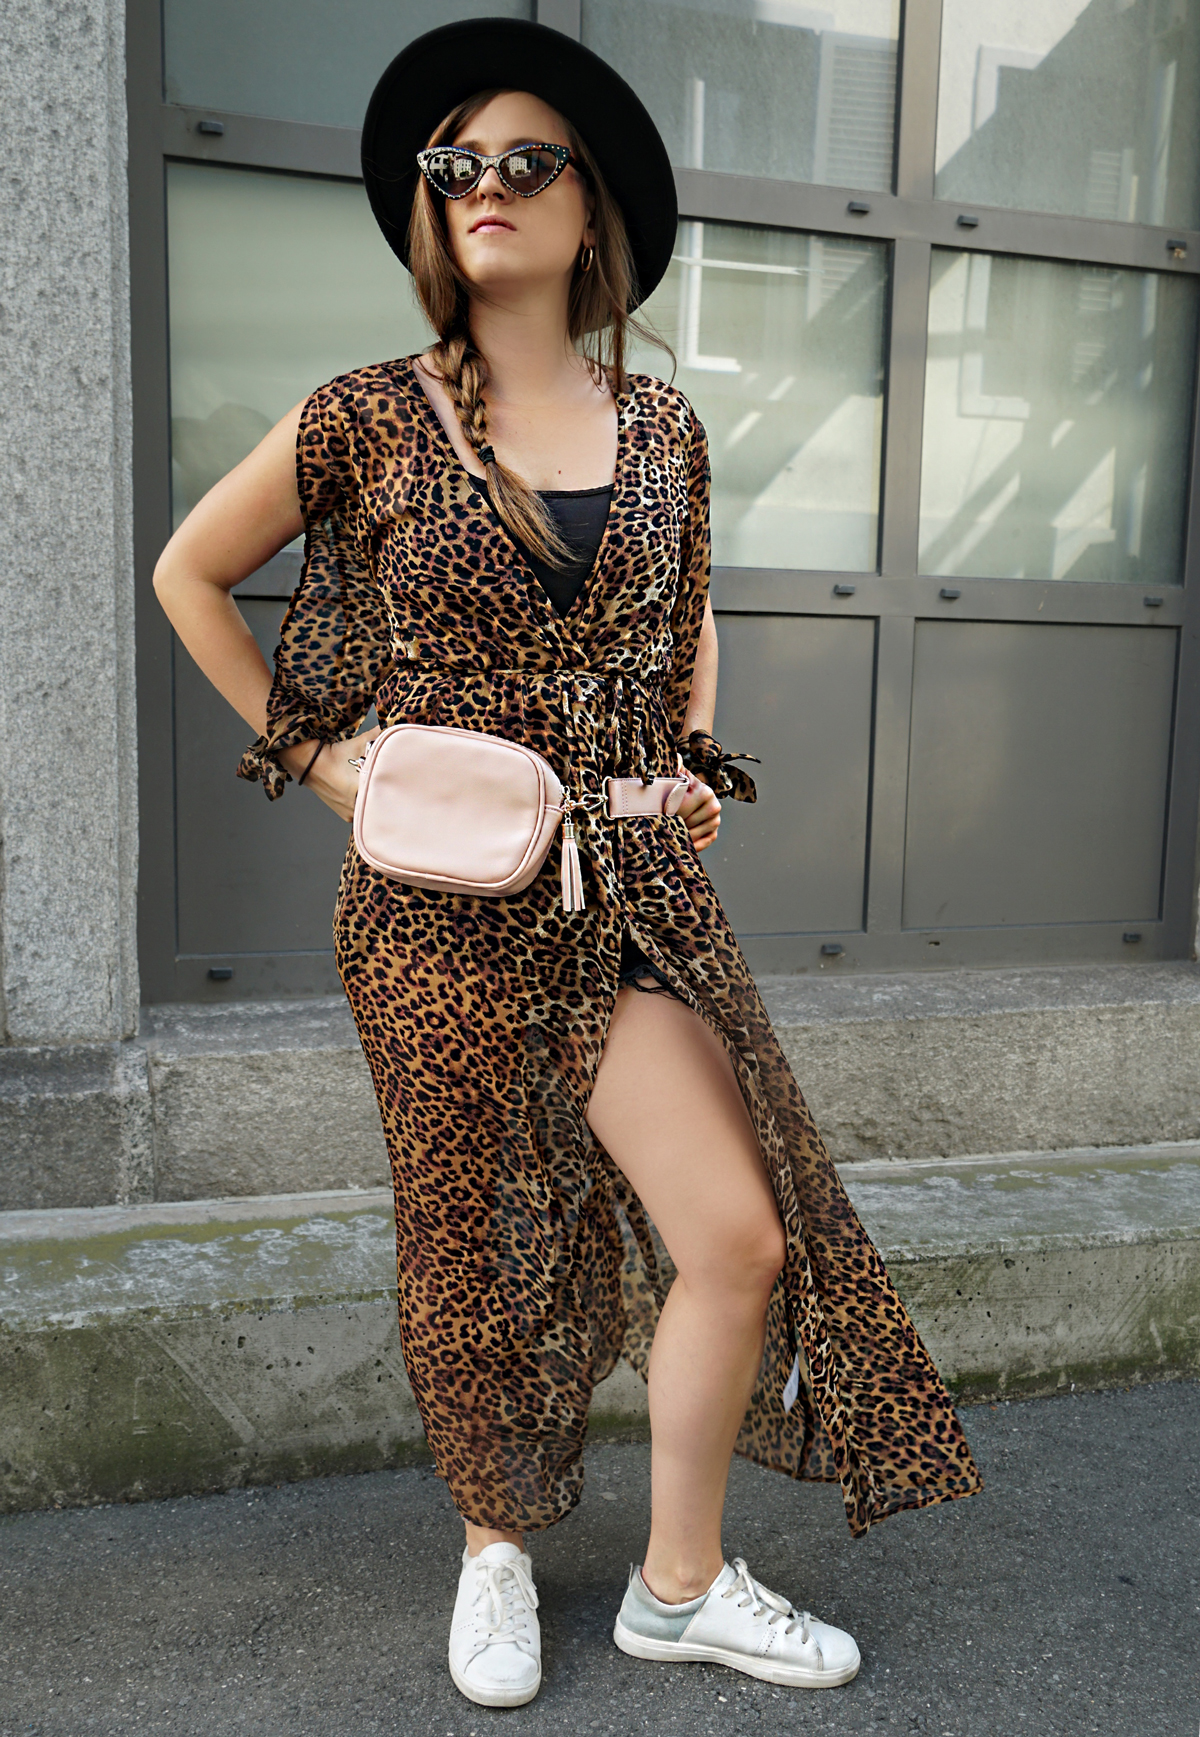 Dress in leopard pattern with a bun bag and sneakers. To wear it in a cool way Andrea from fashion blog Strawberries 'n' Champagne is wearing it with a hat and a cat eye sunglasses.